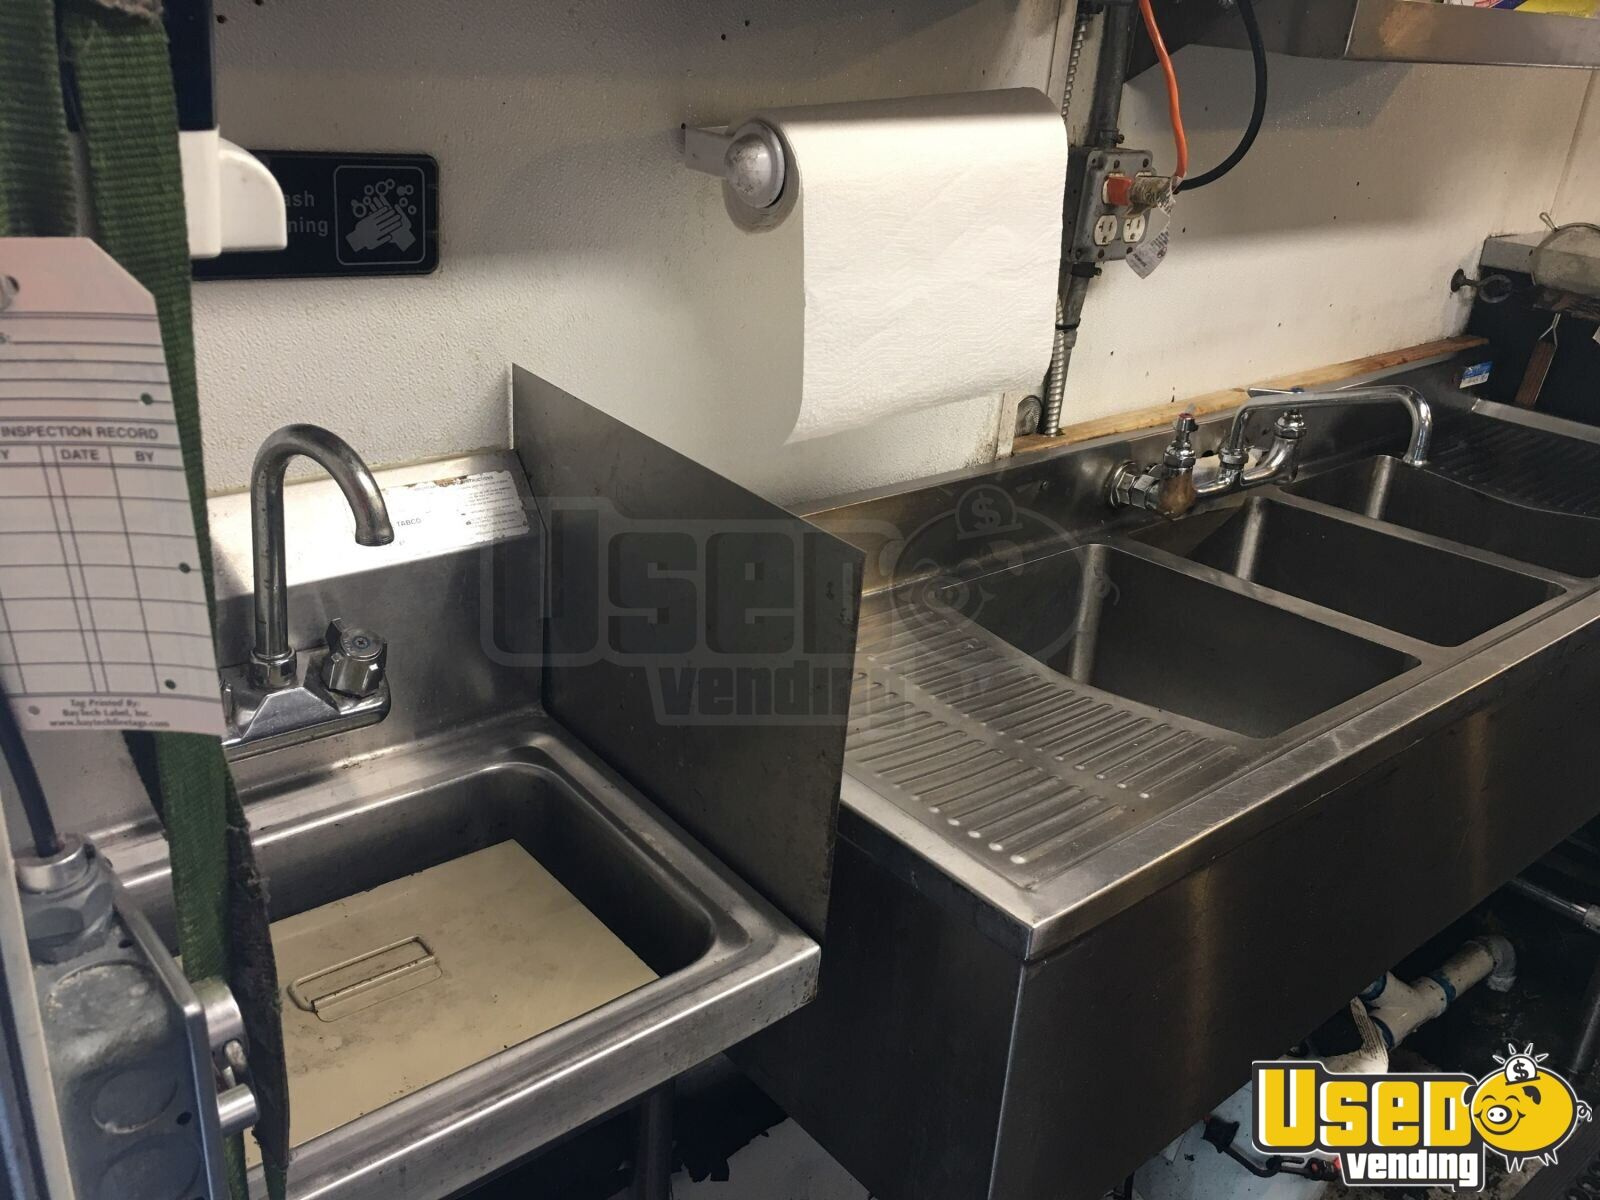 2001 Chevy Workhorse All-purpose Food Truck Fryer Florida Gas Engine for Sale - 17